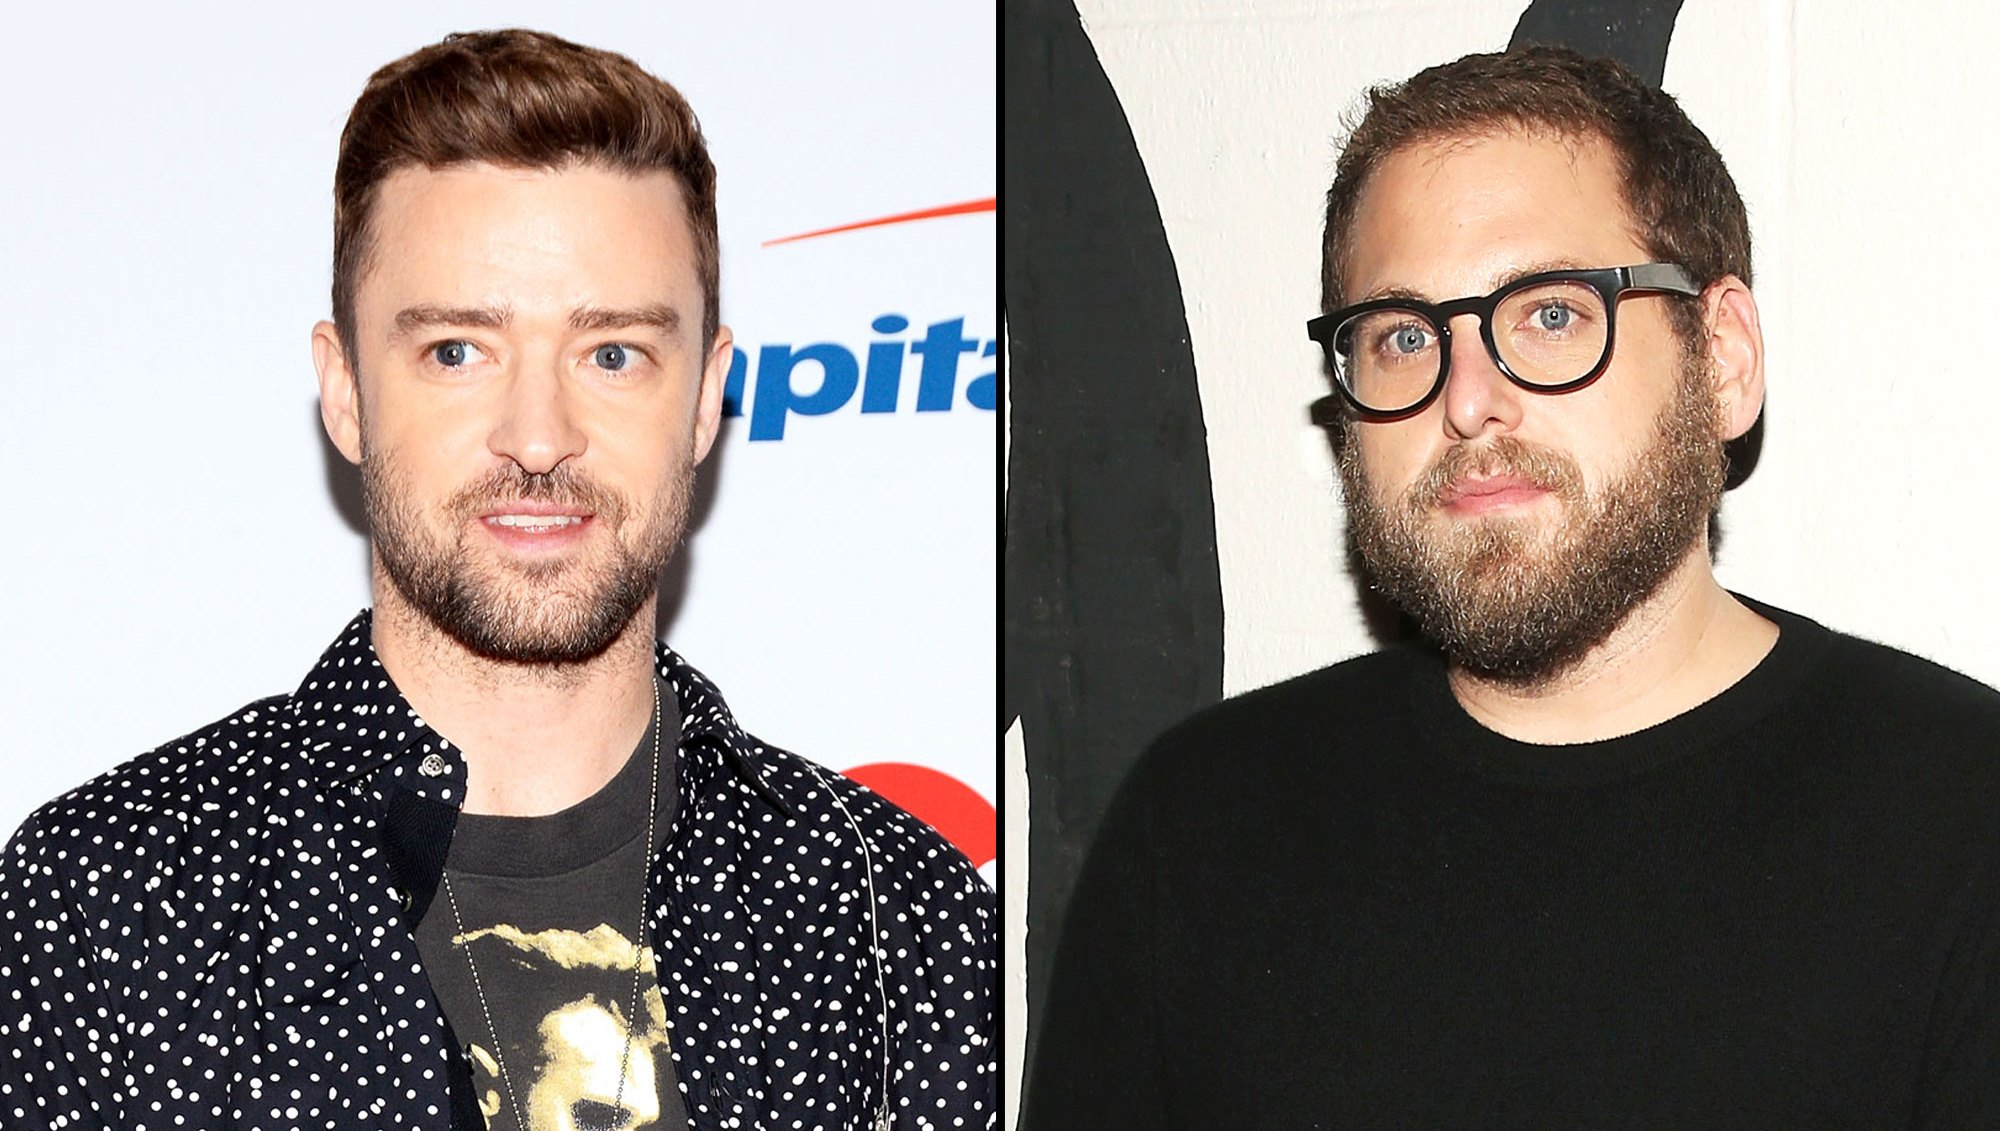 Justin Timberlake and Jonah Hill